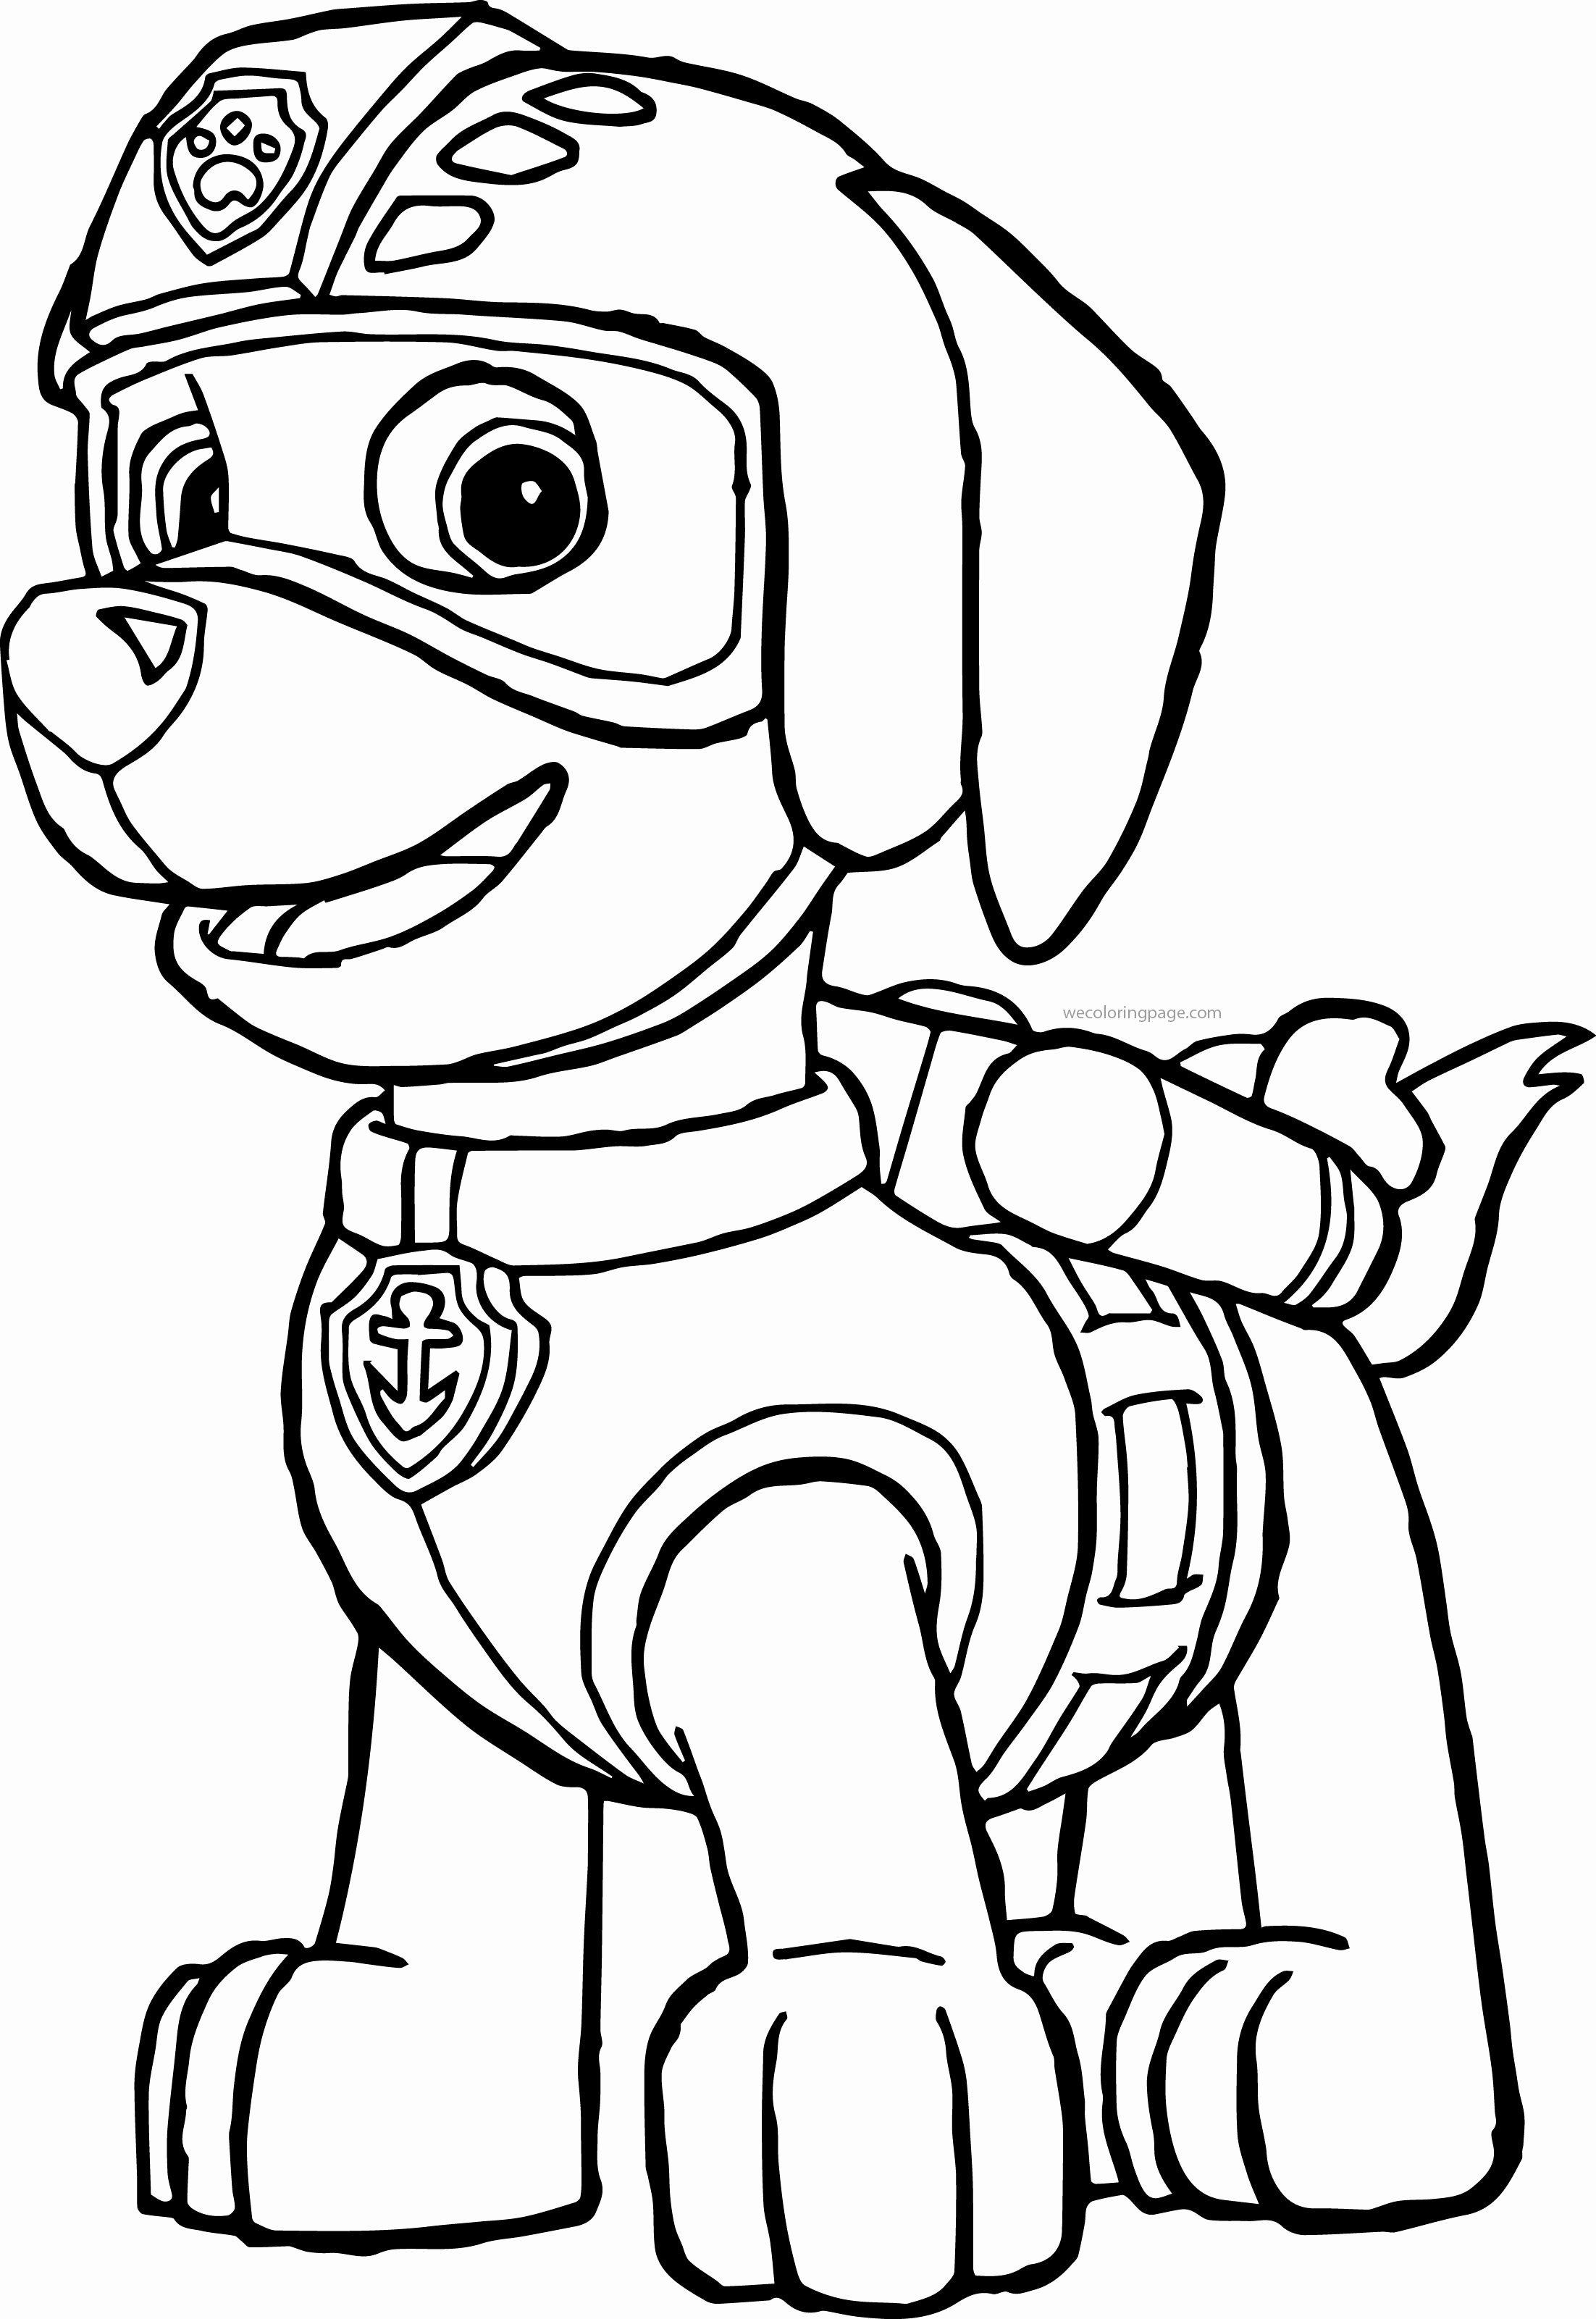 24 Zuma Paw Patrol Coloring Page In 2020 Paw Patrol Coloring